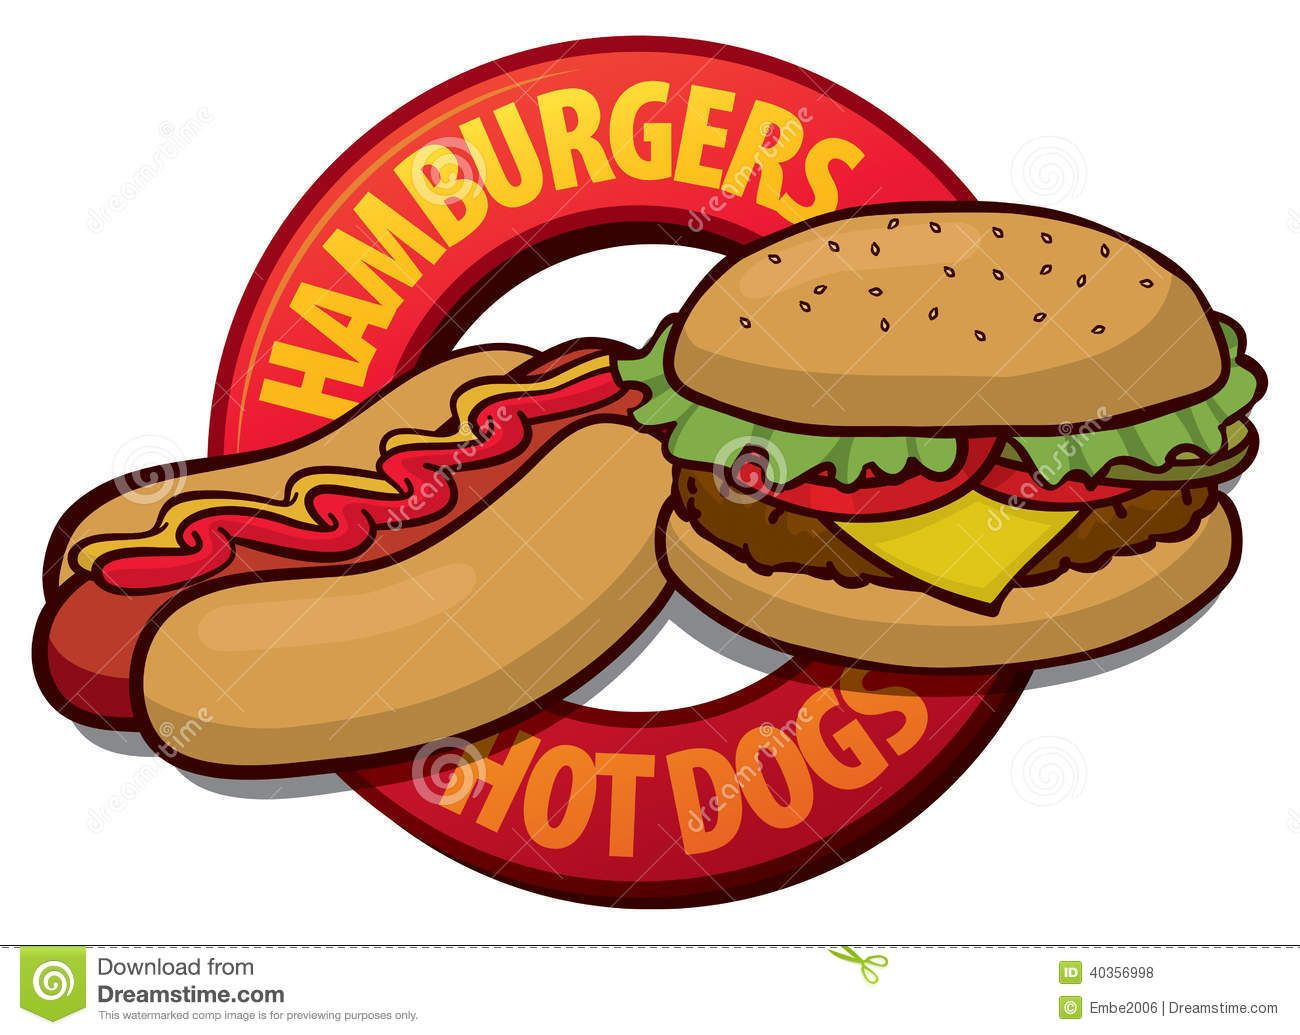 Hot dogs and hamburgers clipart banner transparent download Hamburger Hot Dog Clip Art | Open Studios | Hamburger hotdogs, Dog ... banner transparent download